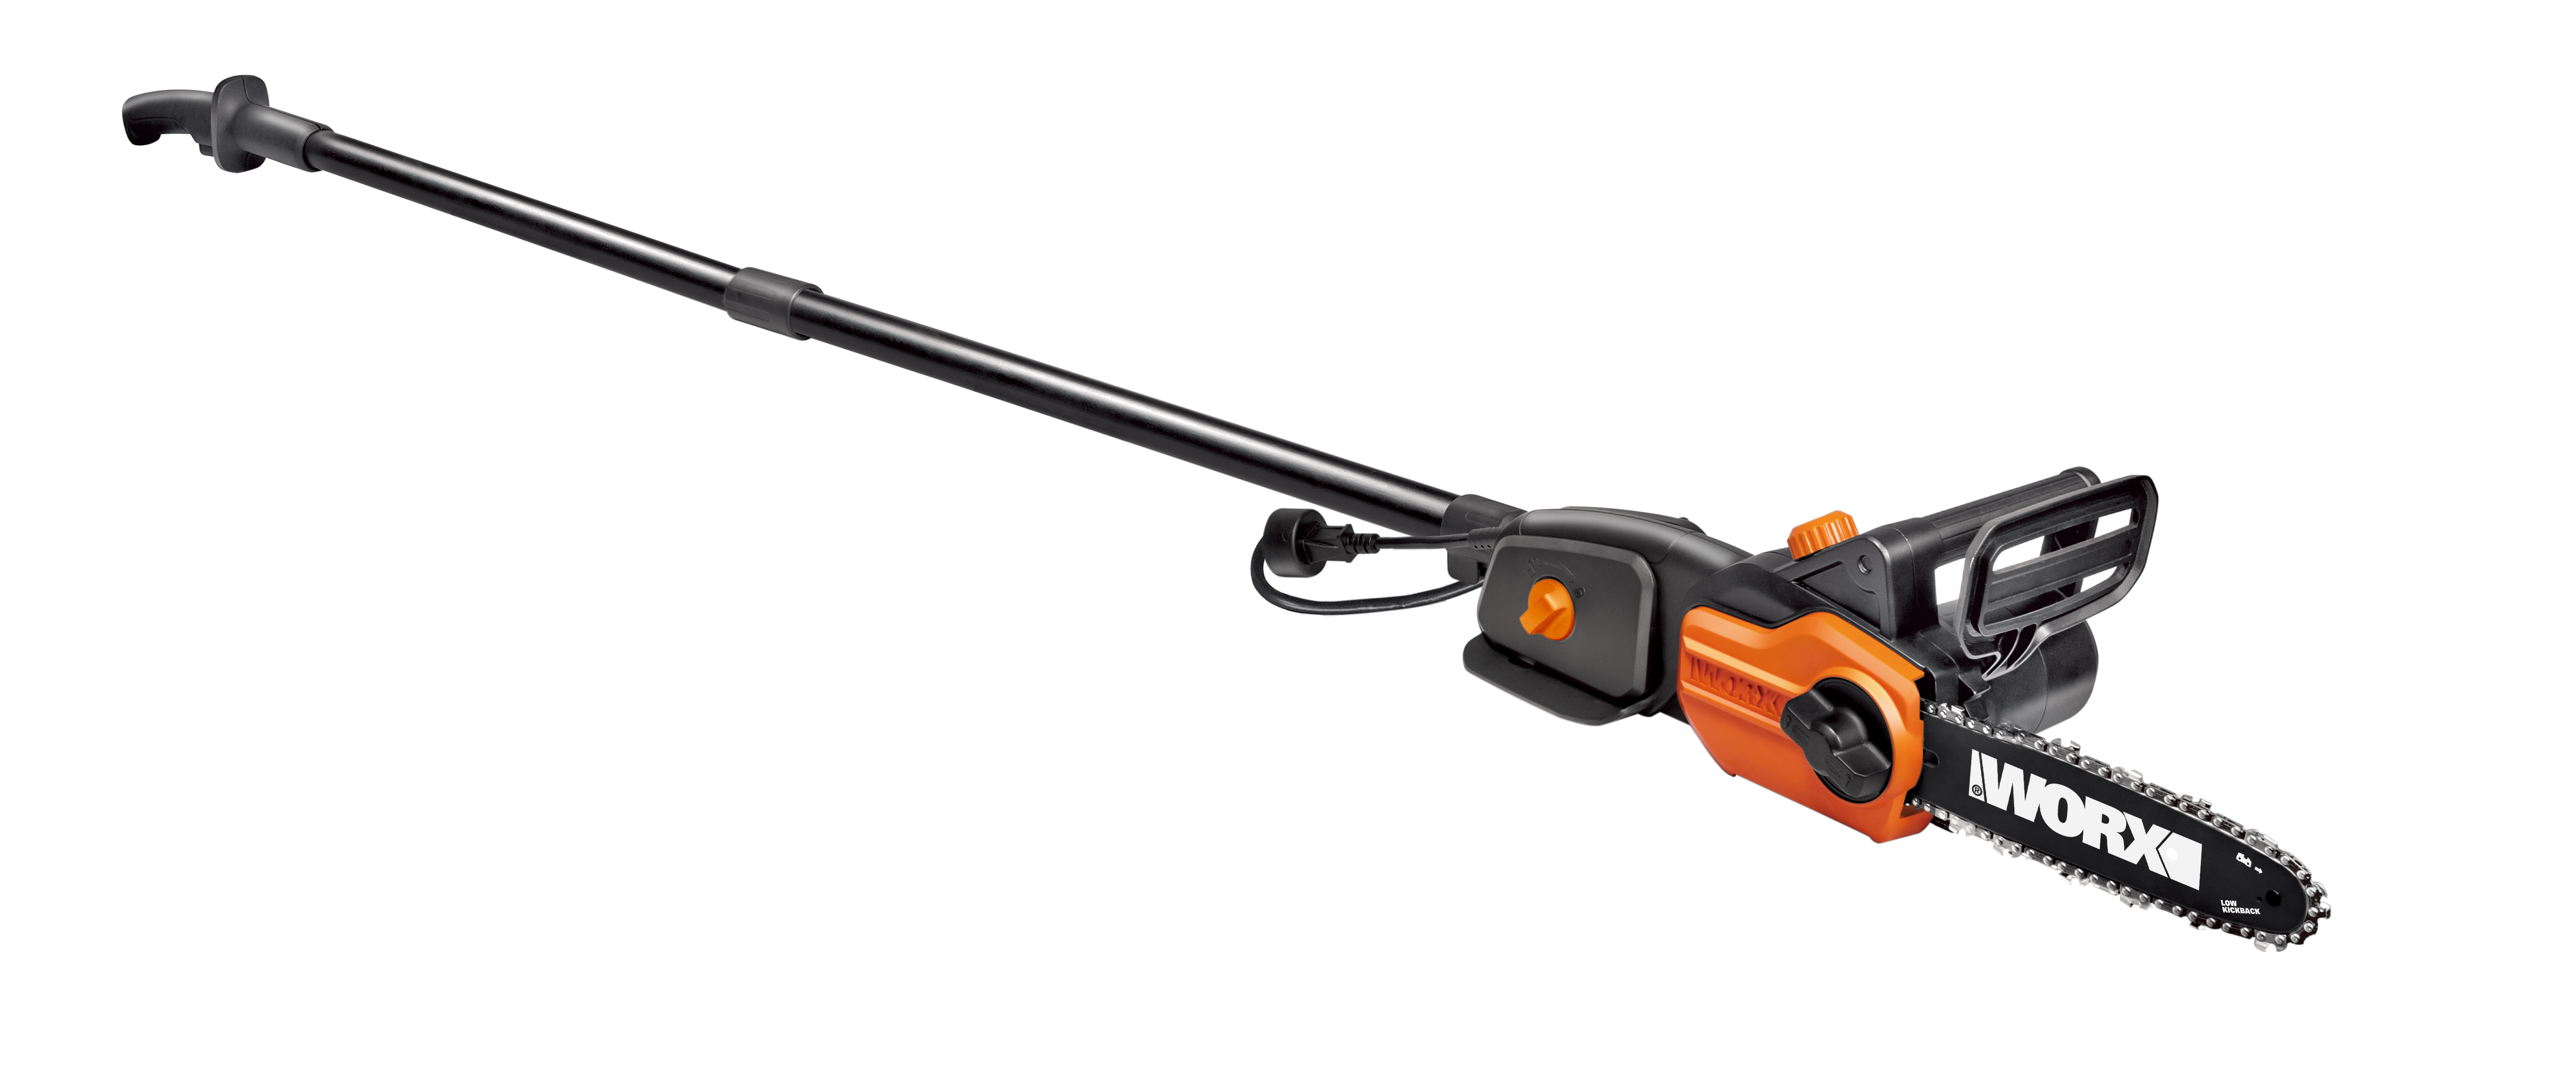 New WORX Electric Pole Saw Cuts Two Ways for Spring